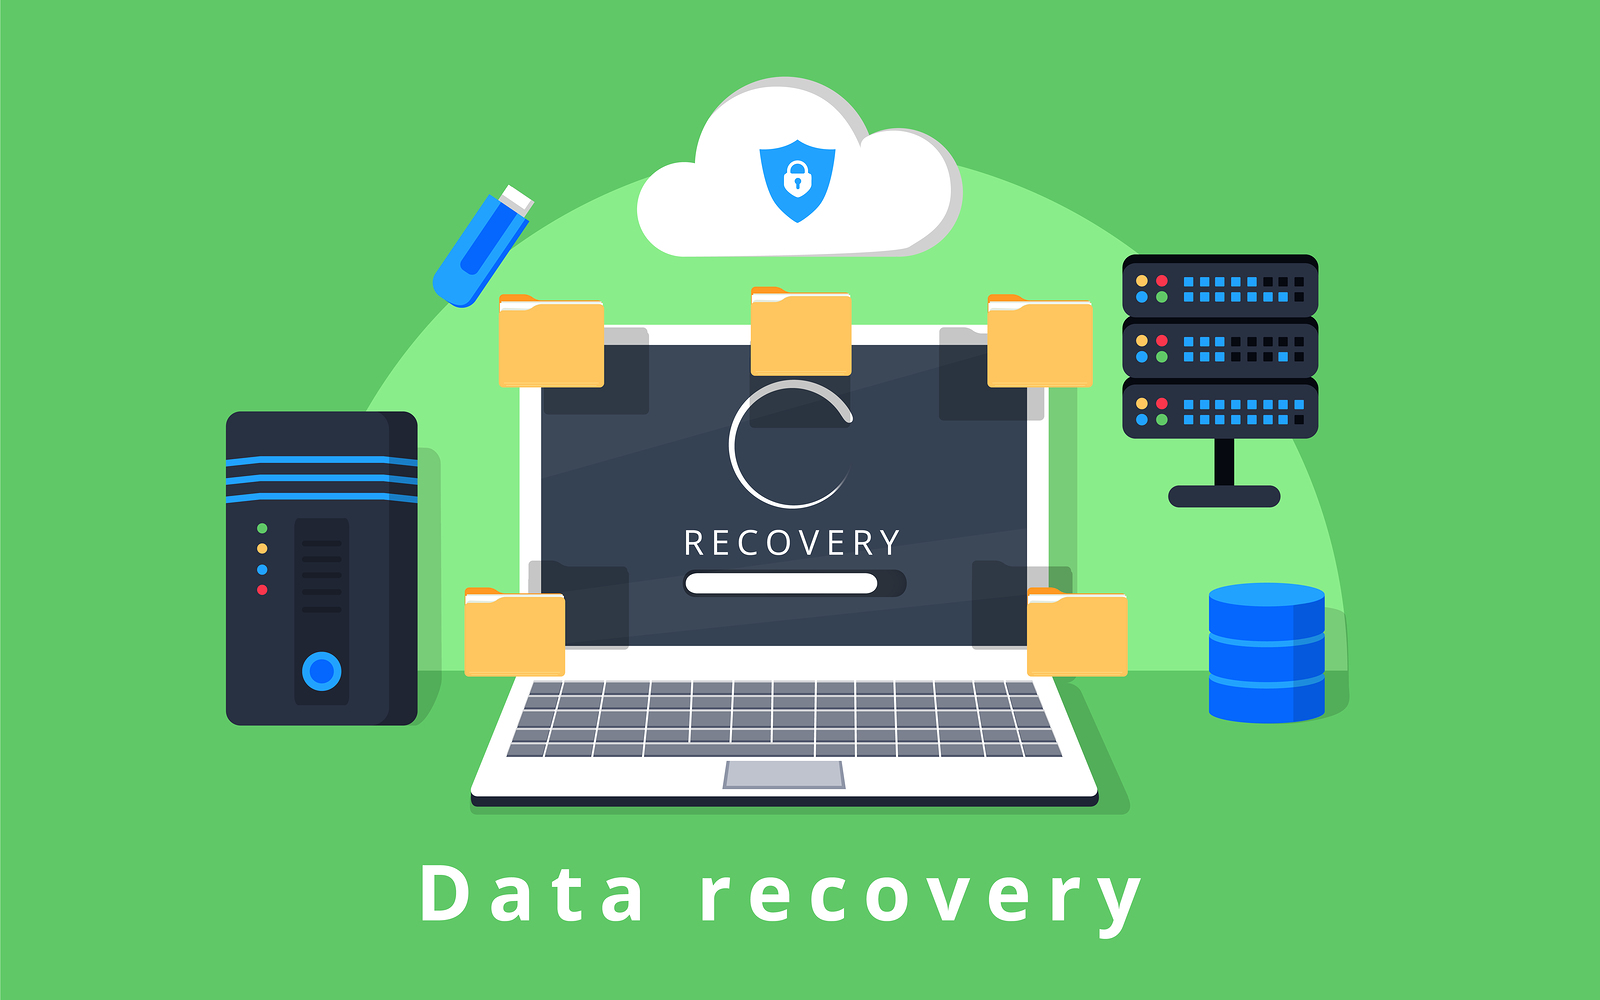 Data recovery process from a disabled iDevice